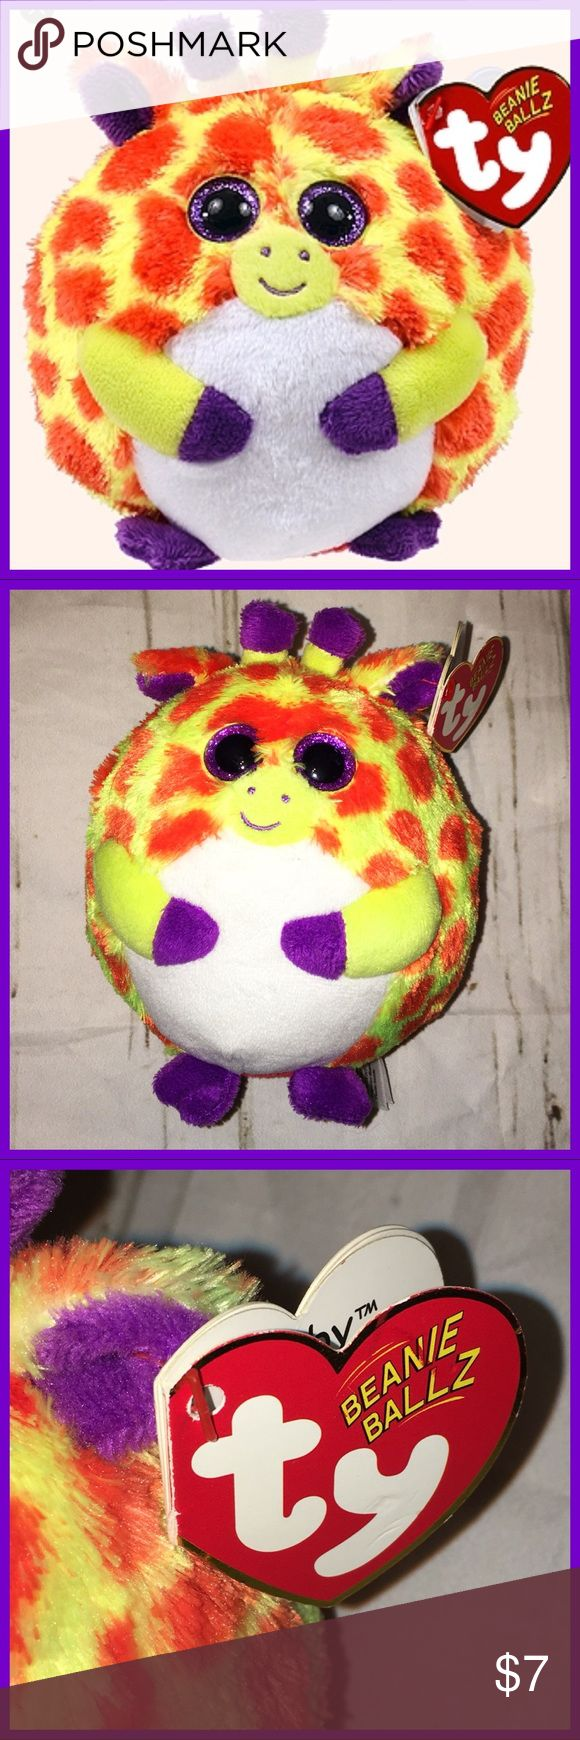 🦒 Ty Toby Beanie Ballz NWT🦒 From the TY Beanie Baby Ballz collection.  Plush stuffed giraffe  collectible.  Tag attached. See pic for more details Approximate size: 5 inches.   Birthday: June 9 Ty Beanie Ballz Accessories